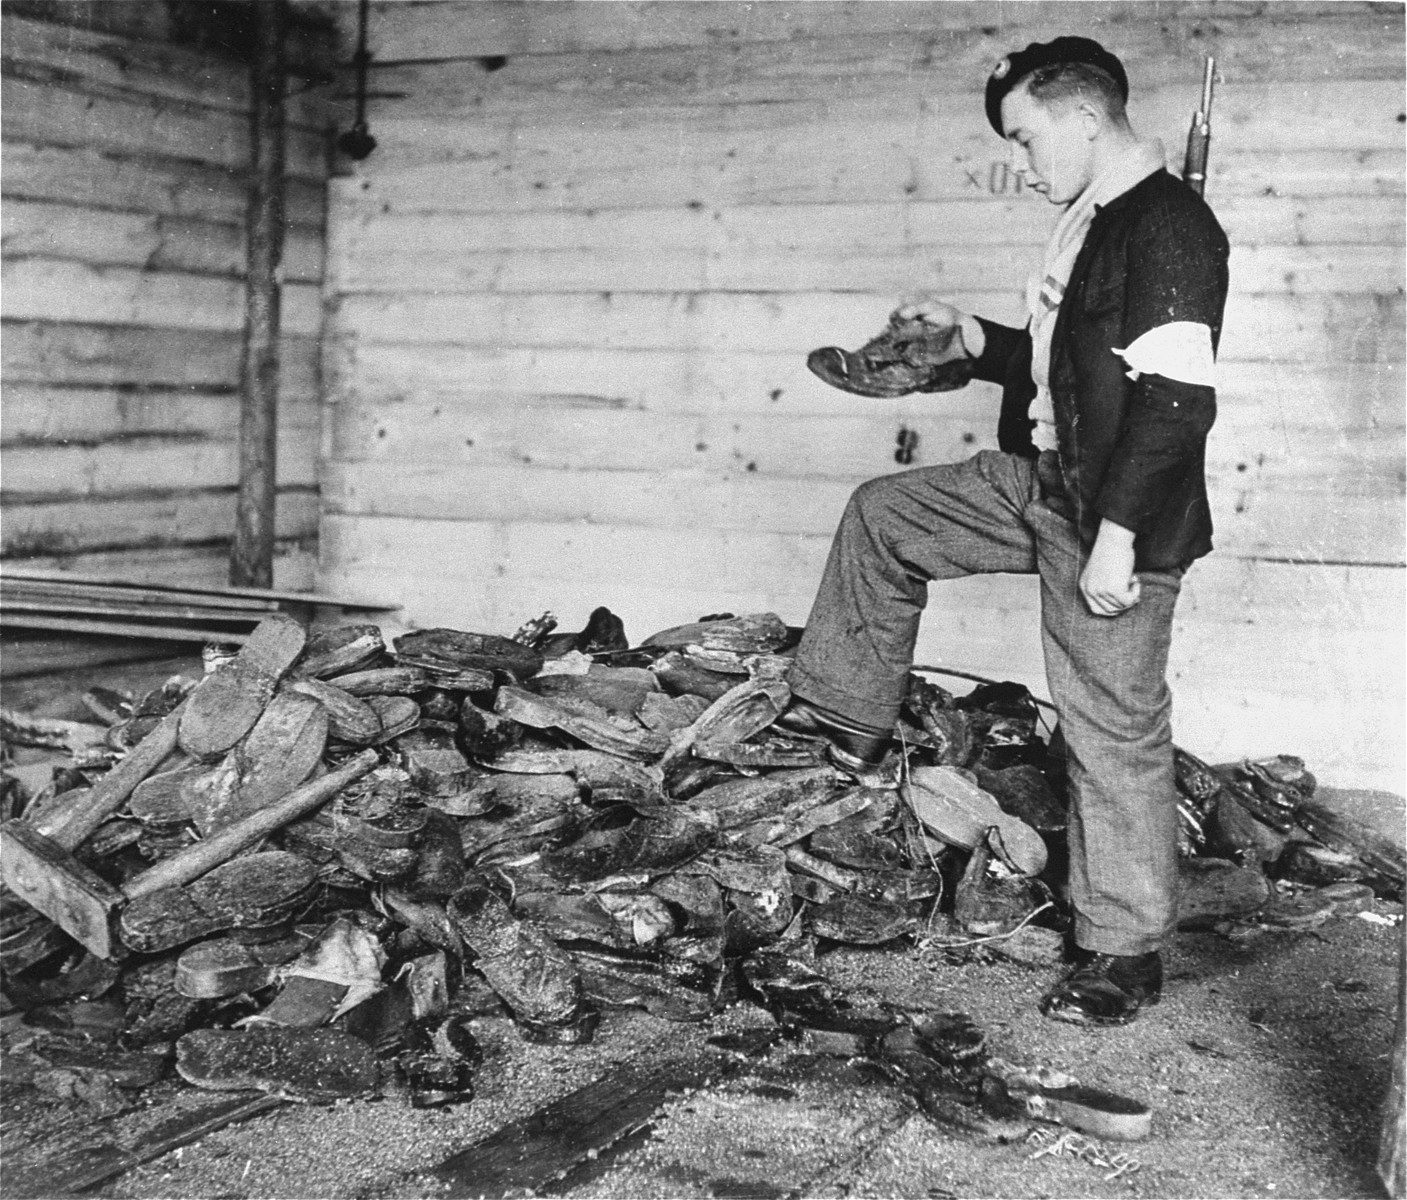 A young member of the French resistance examines boots, shoes, and wooden clogs piled near a furnace in the crematorium of the Natzweiler-Struthof concentration camp.